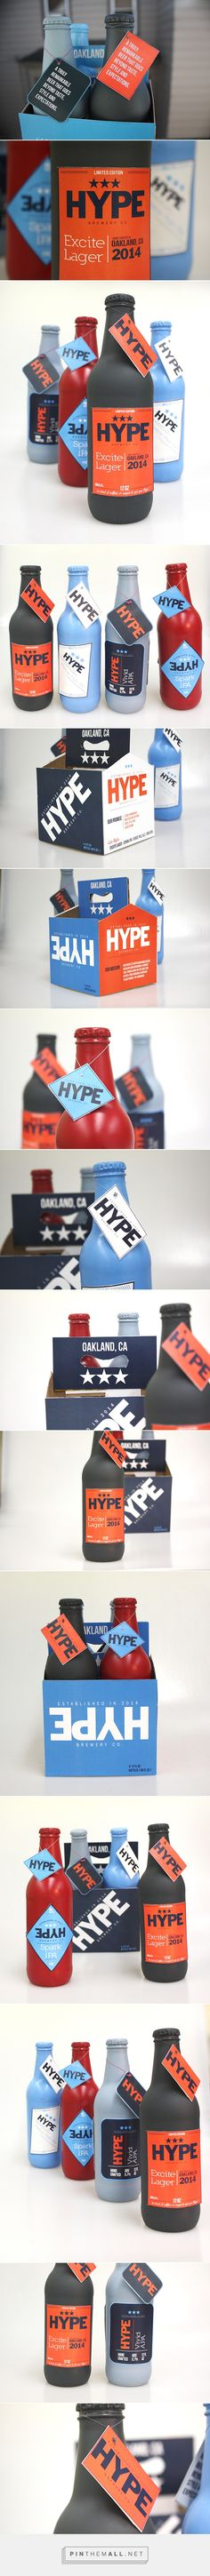 Hype Brewery Co. Packaging design by jiggy patel